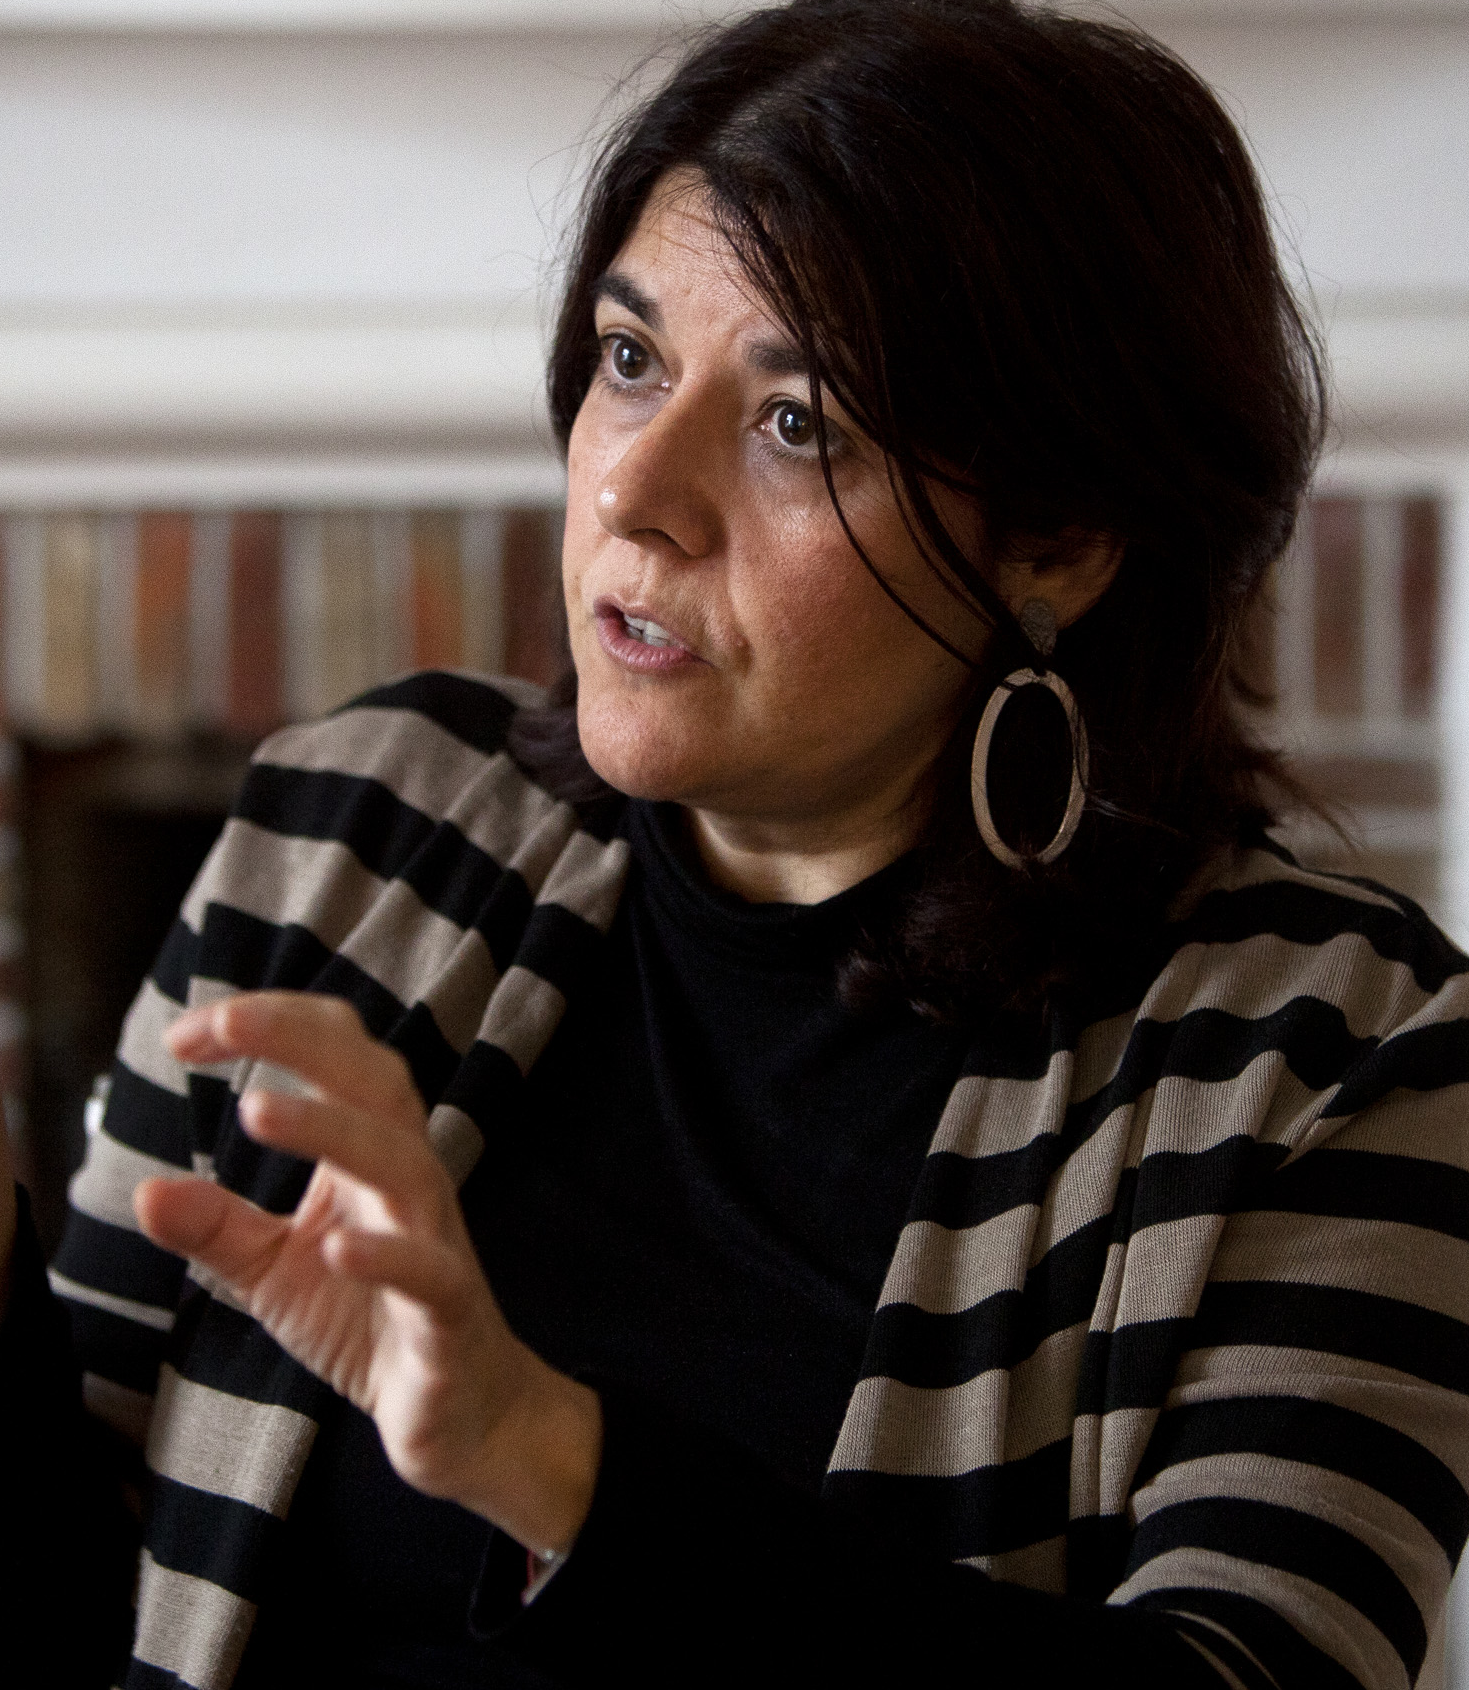 Carla Padró, Researcher and Consultant, Spain